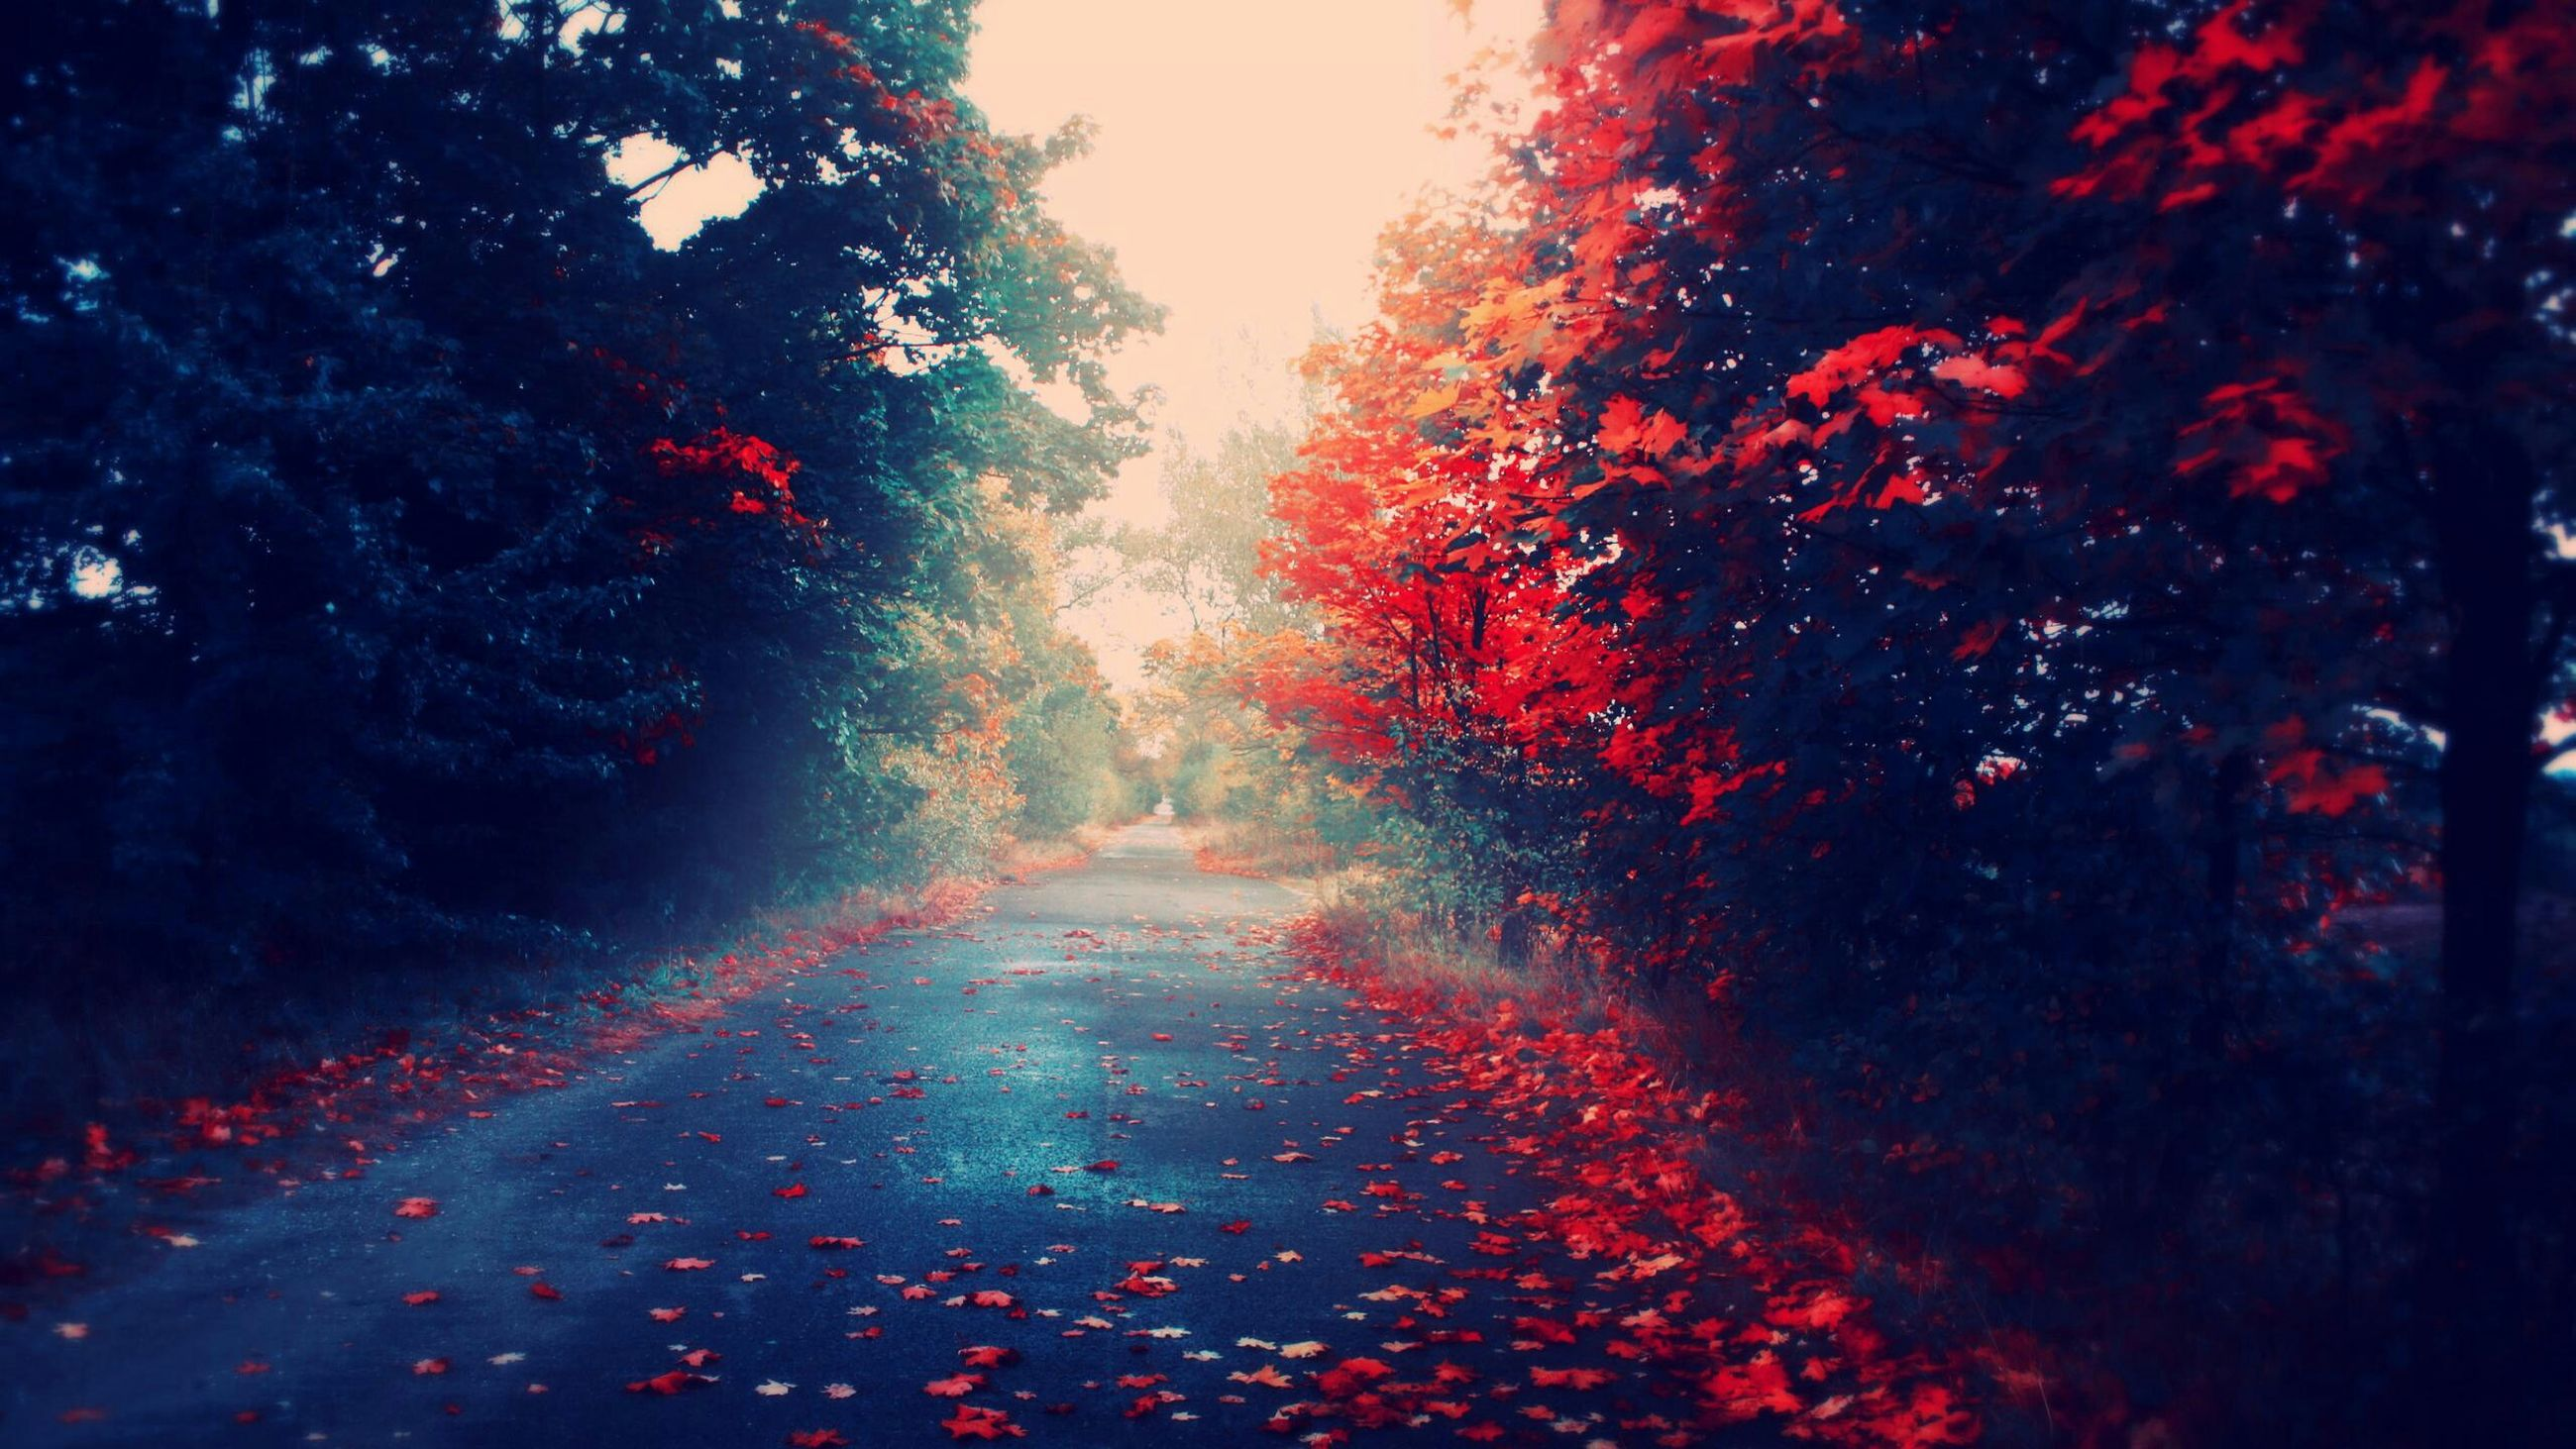 the way forward, tree, diminishing perspective, road, street, transportation, autumn, season, vanishing point, growth, nature, change, red, tranquility, beauty in nature, outdoors, wet, no people, leaf, branch